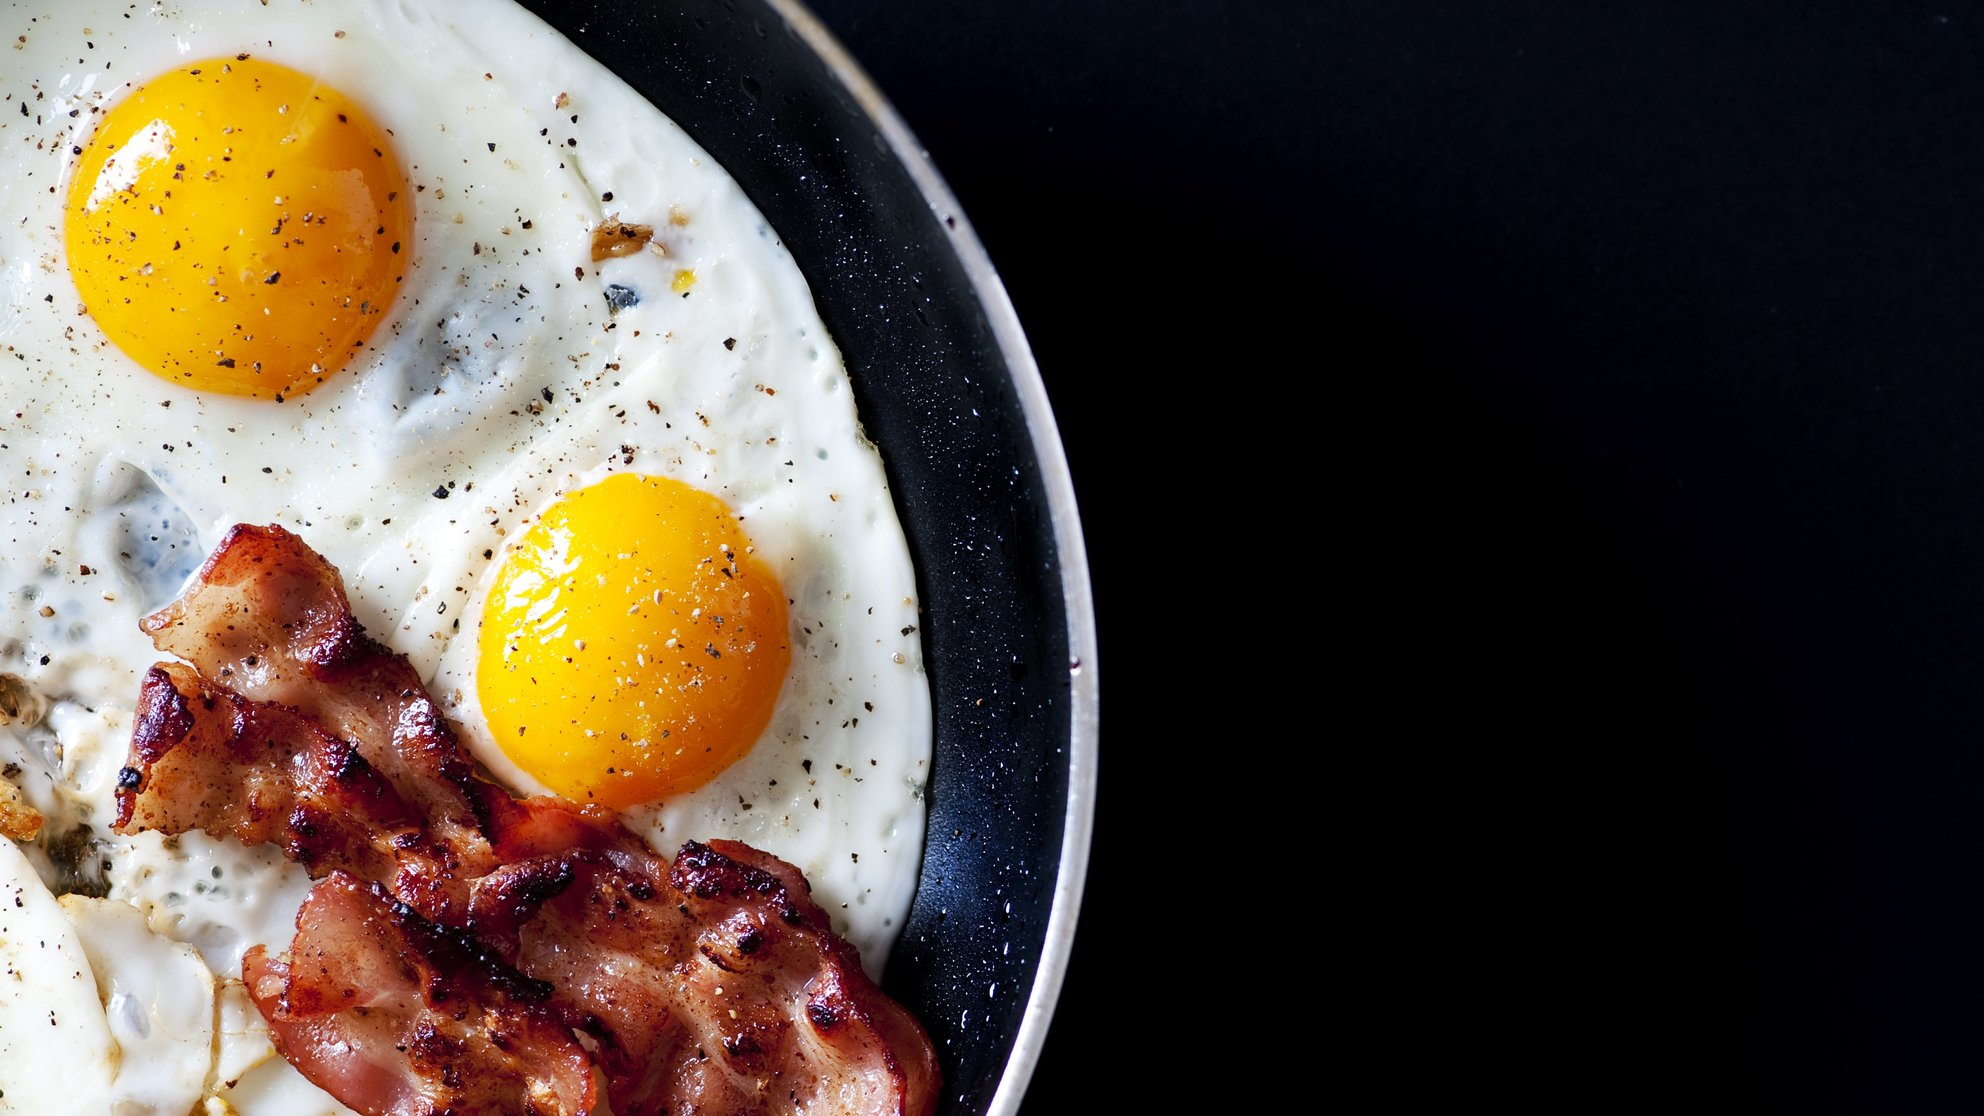 What Science Says About Snacking and Breakfast